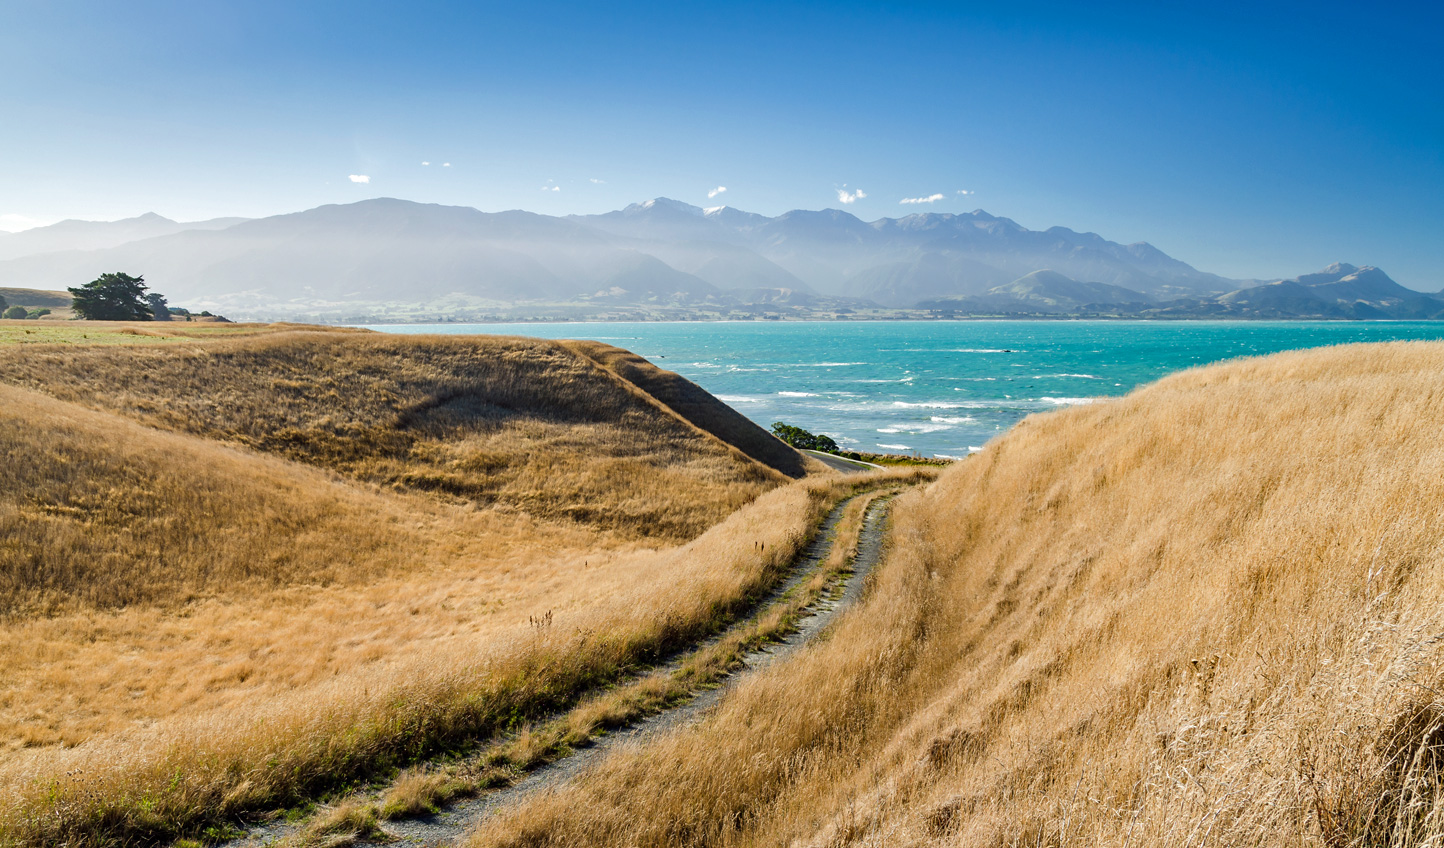 Head down to the aquamarine waters off Kaikoura